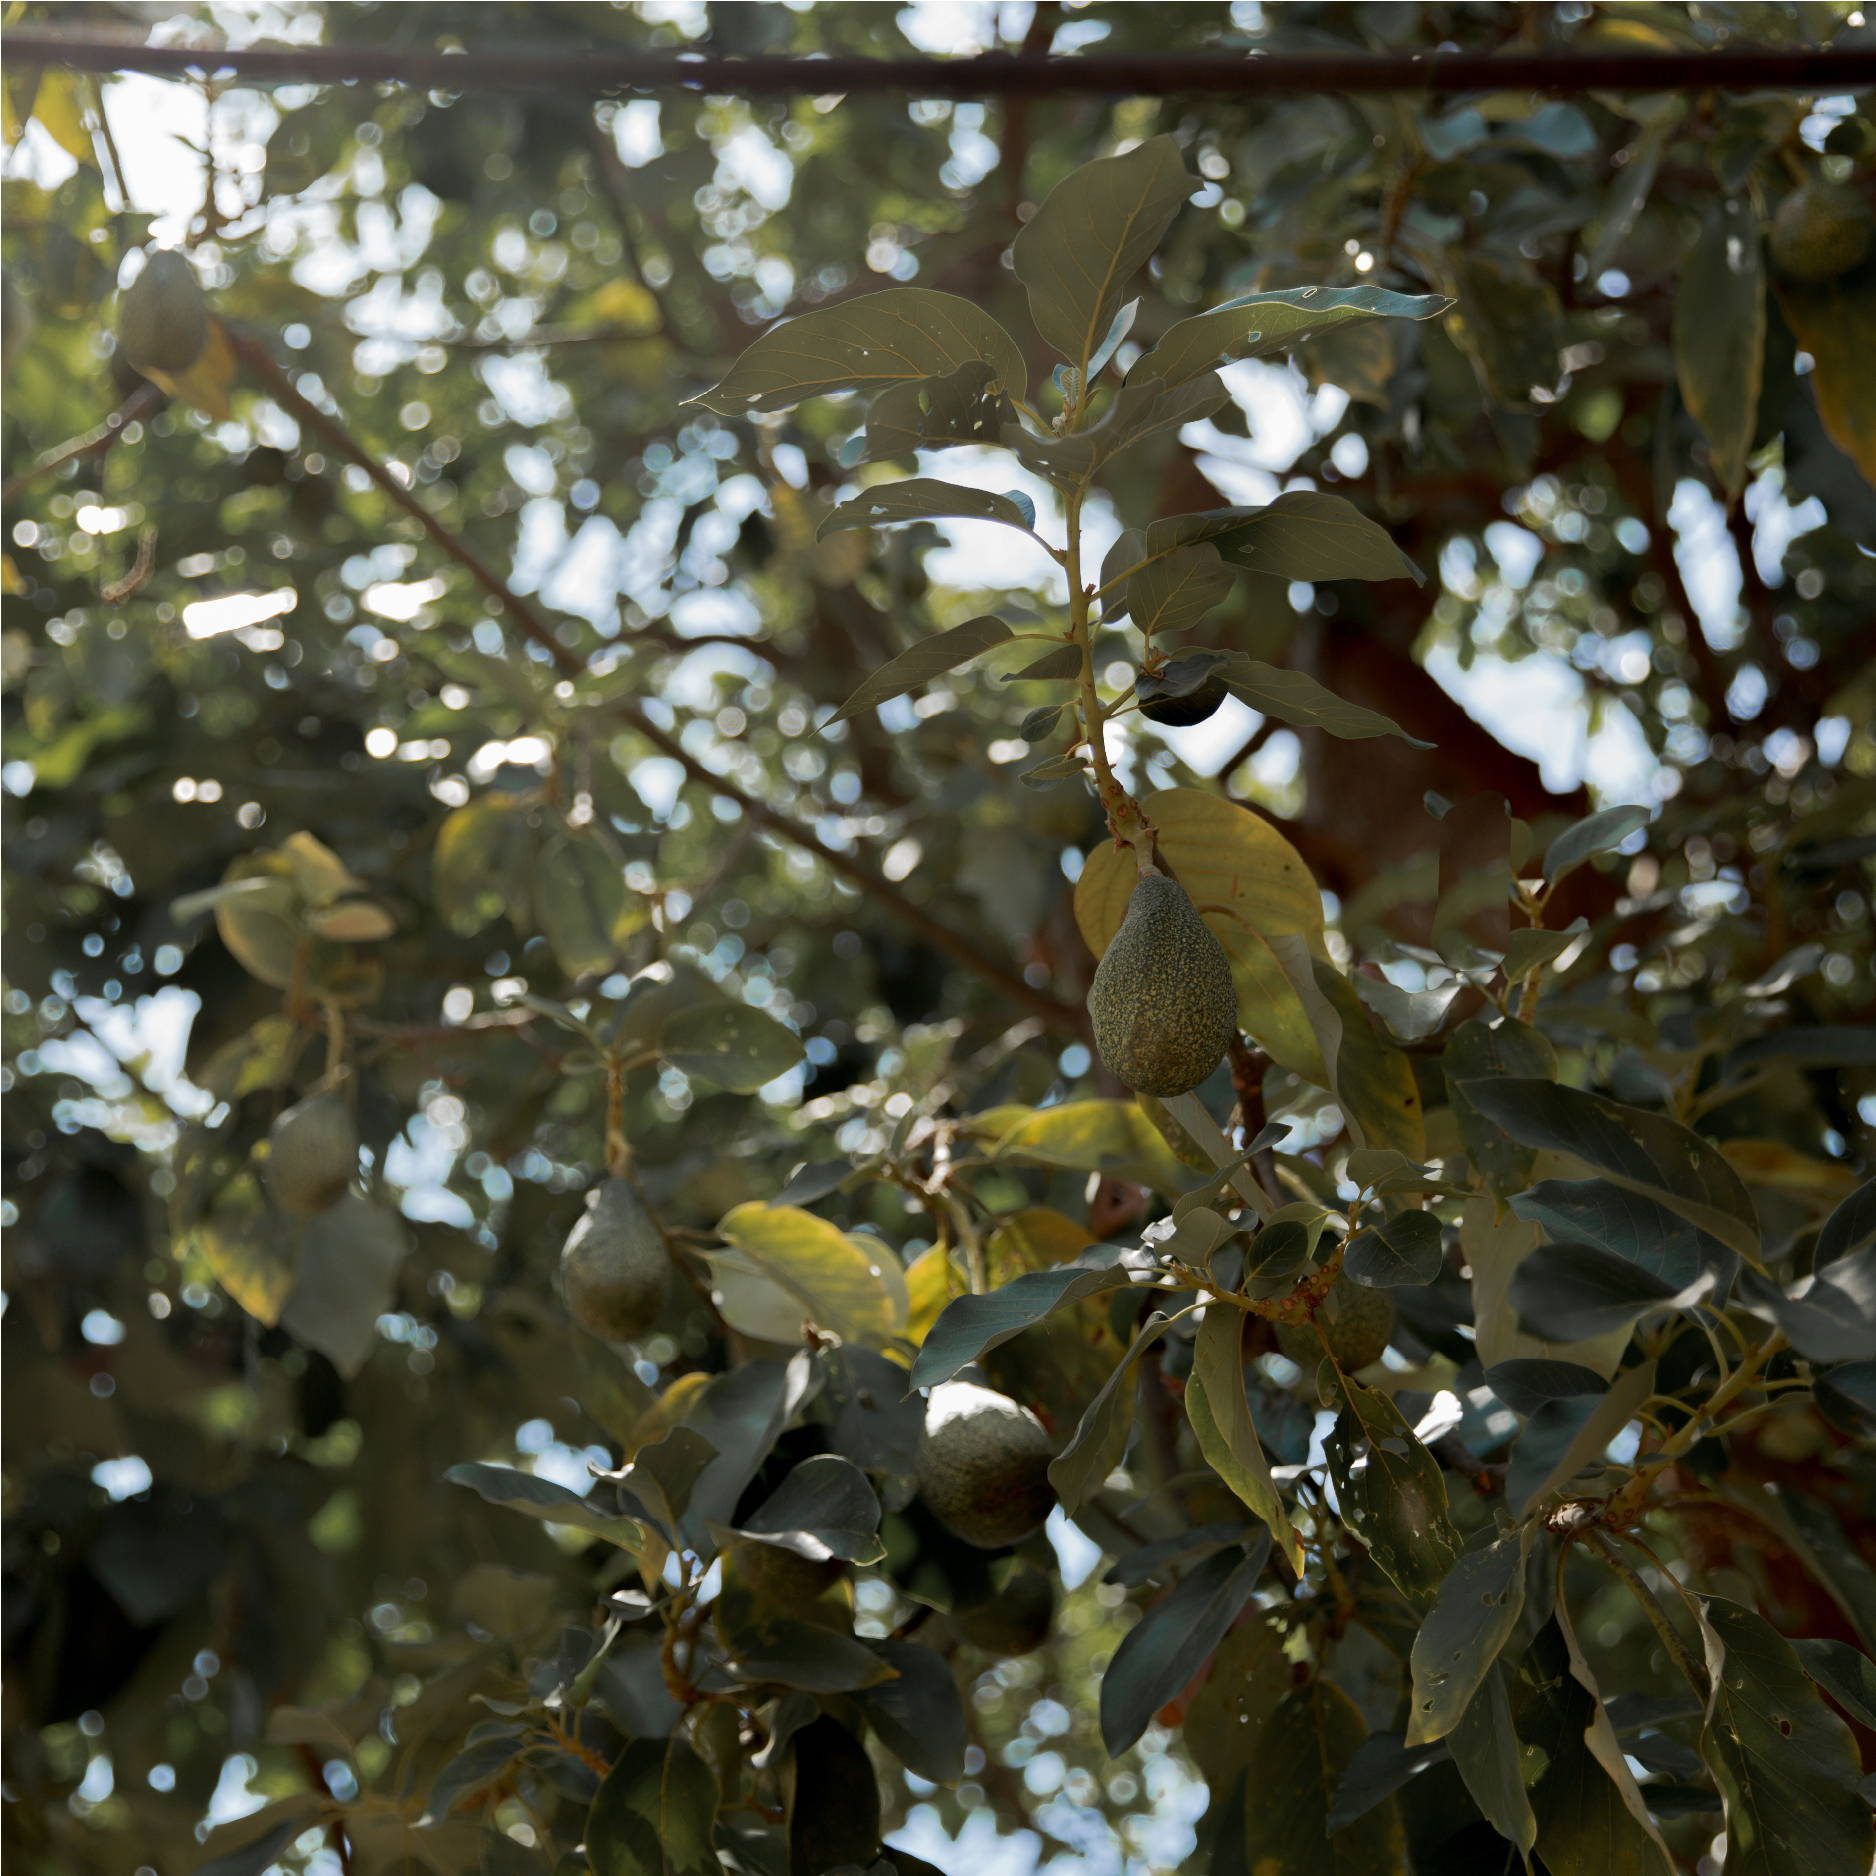 the green leaves and ripe fruit of an avocado tree hang in front of the blue sky.